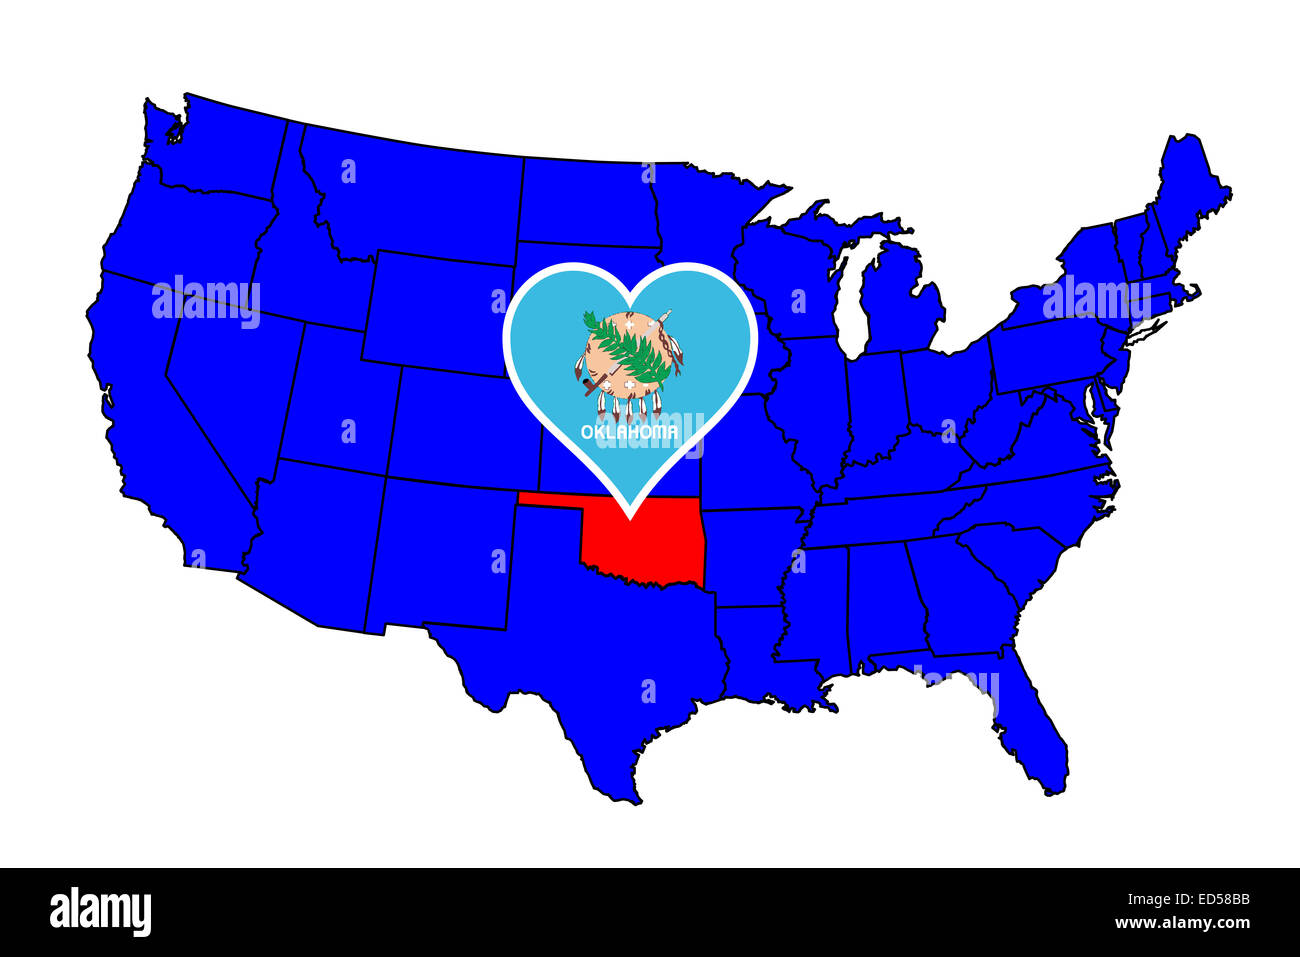 Oklahoma state outline and icon inset set into a map of The United